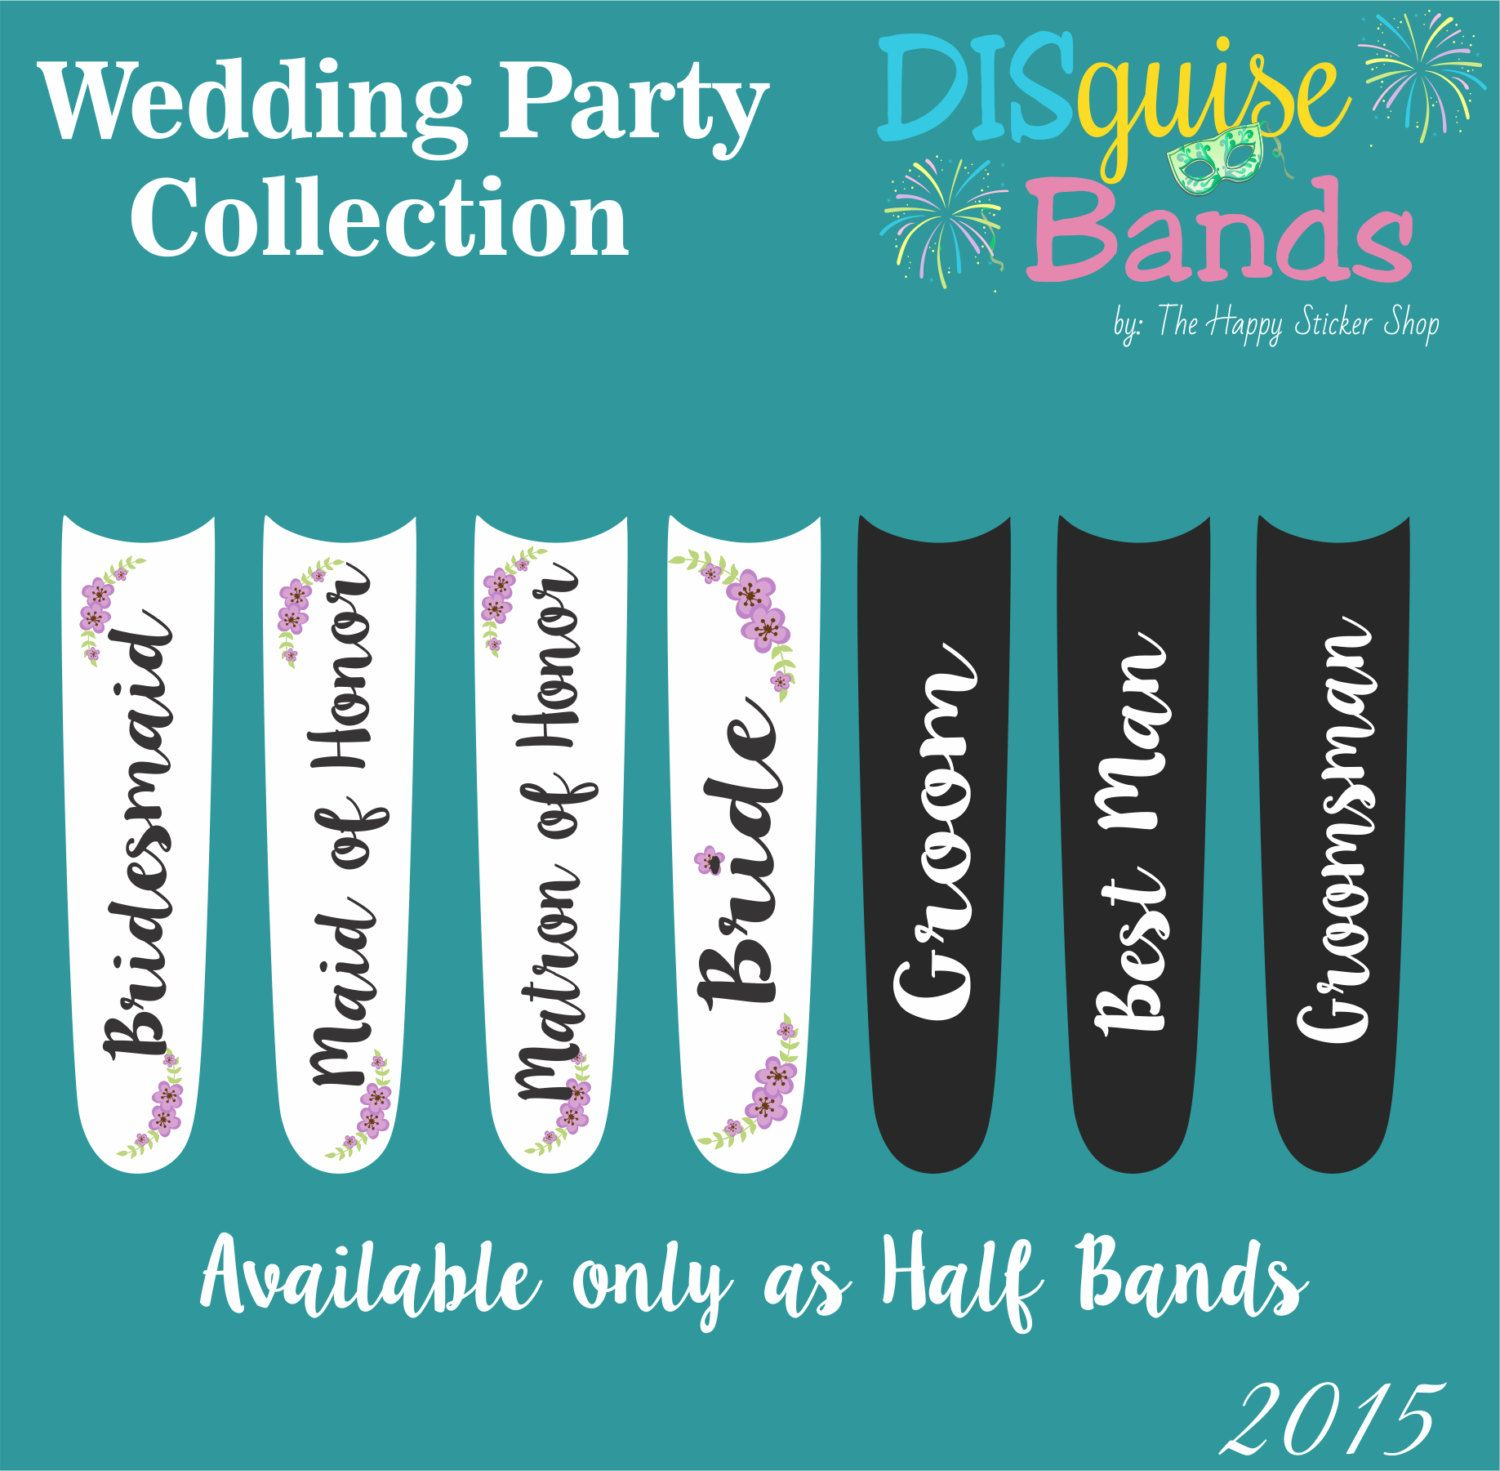 Wedding Party Collection Magic Band Decal DISguise Band Vinyl - Magic band vinyl decals